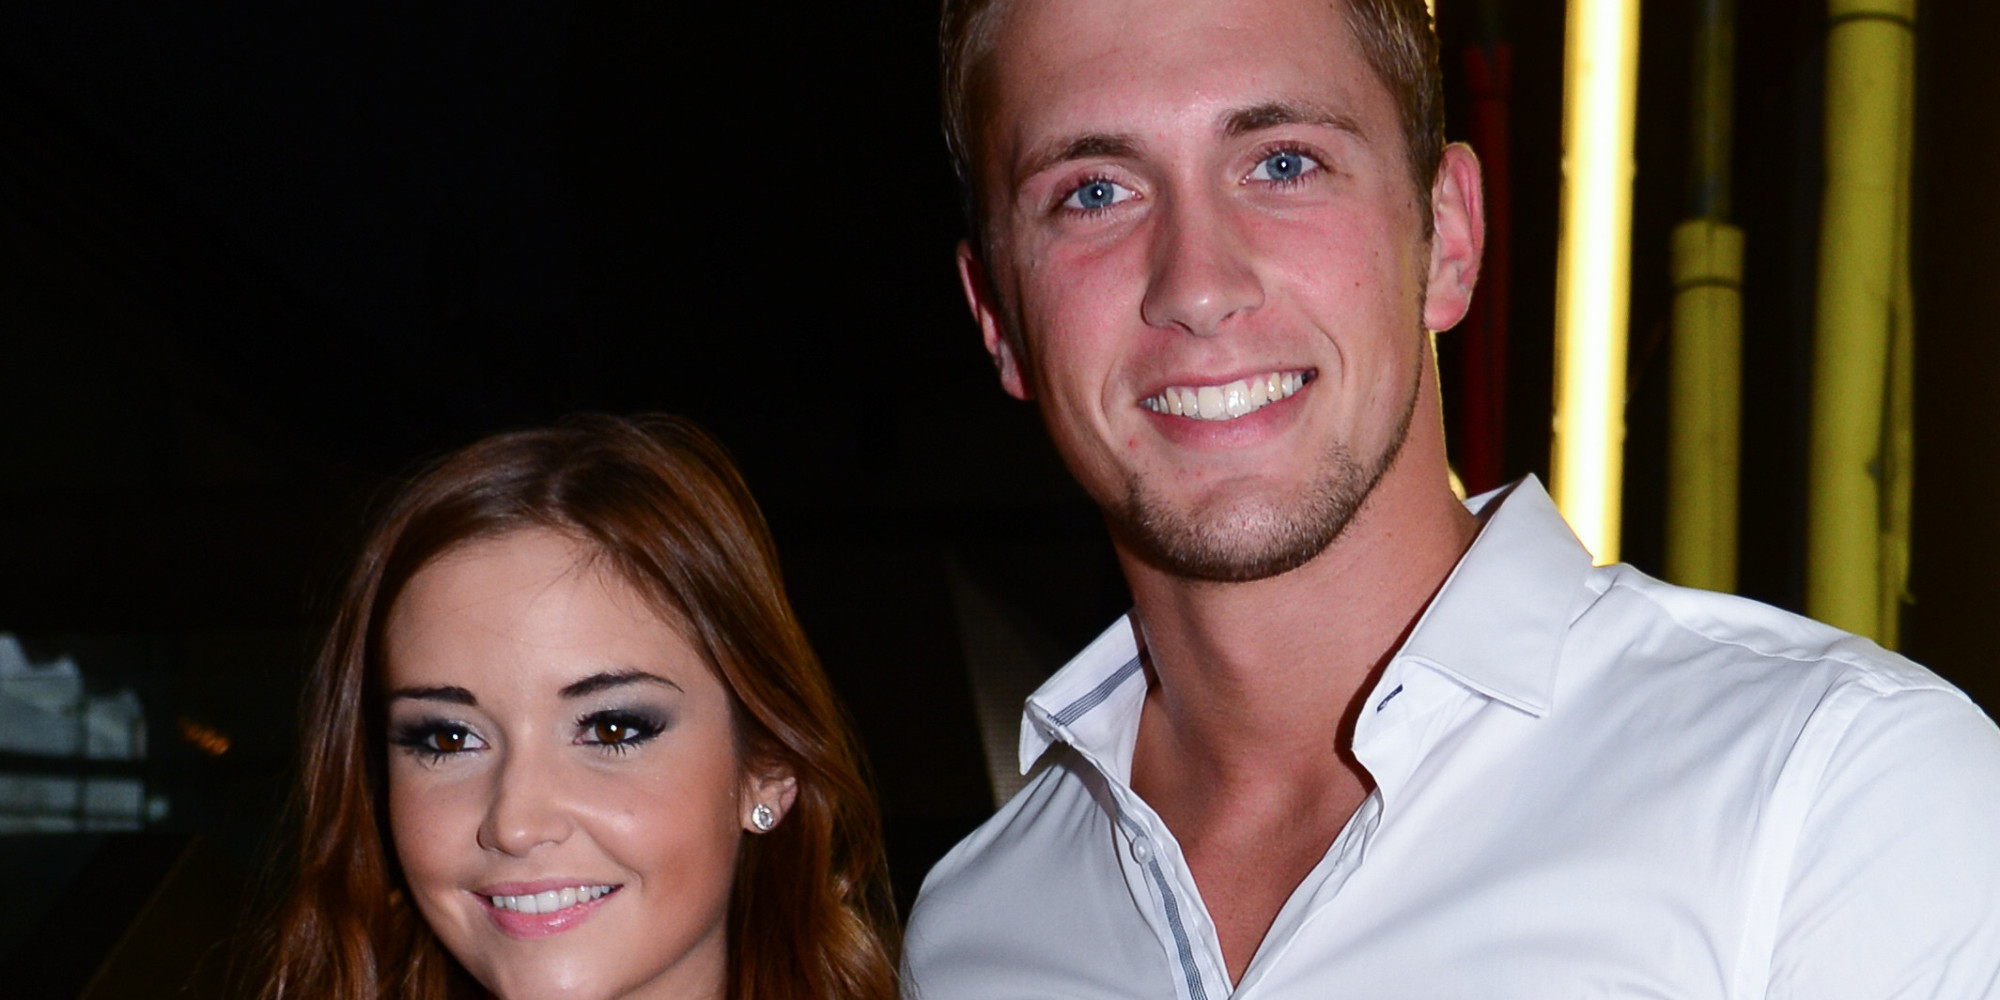 towie star dating eastenders star The only way is essex towie star's las vegas party  eastenders jacqueline jossa  the only way is essex megan mckenna 'secretly dating' love island's .